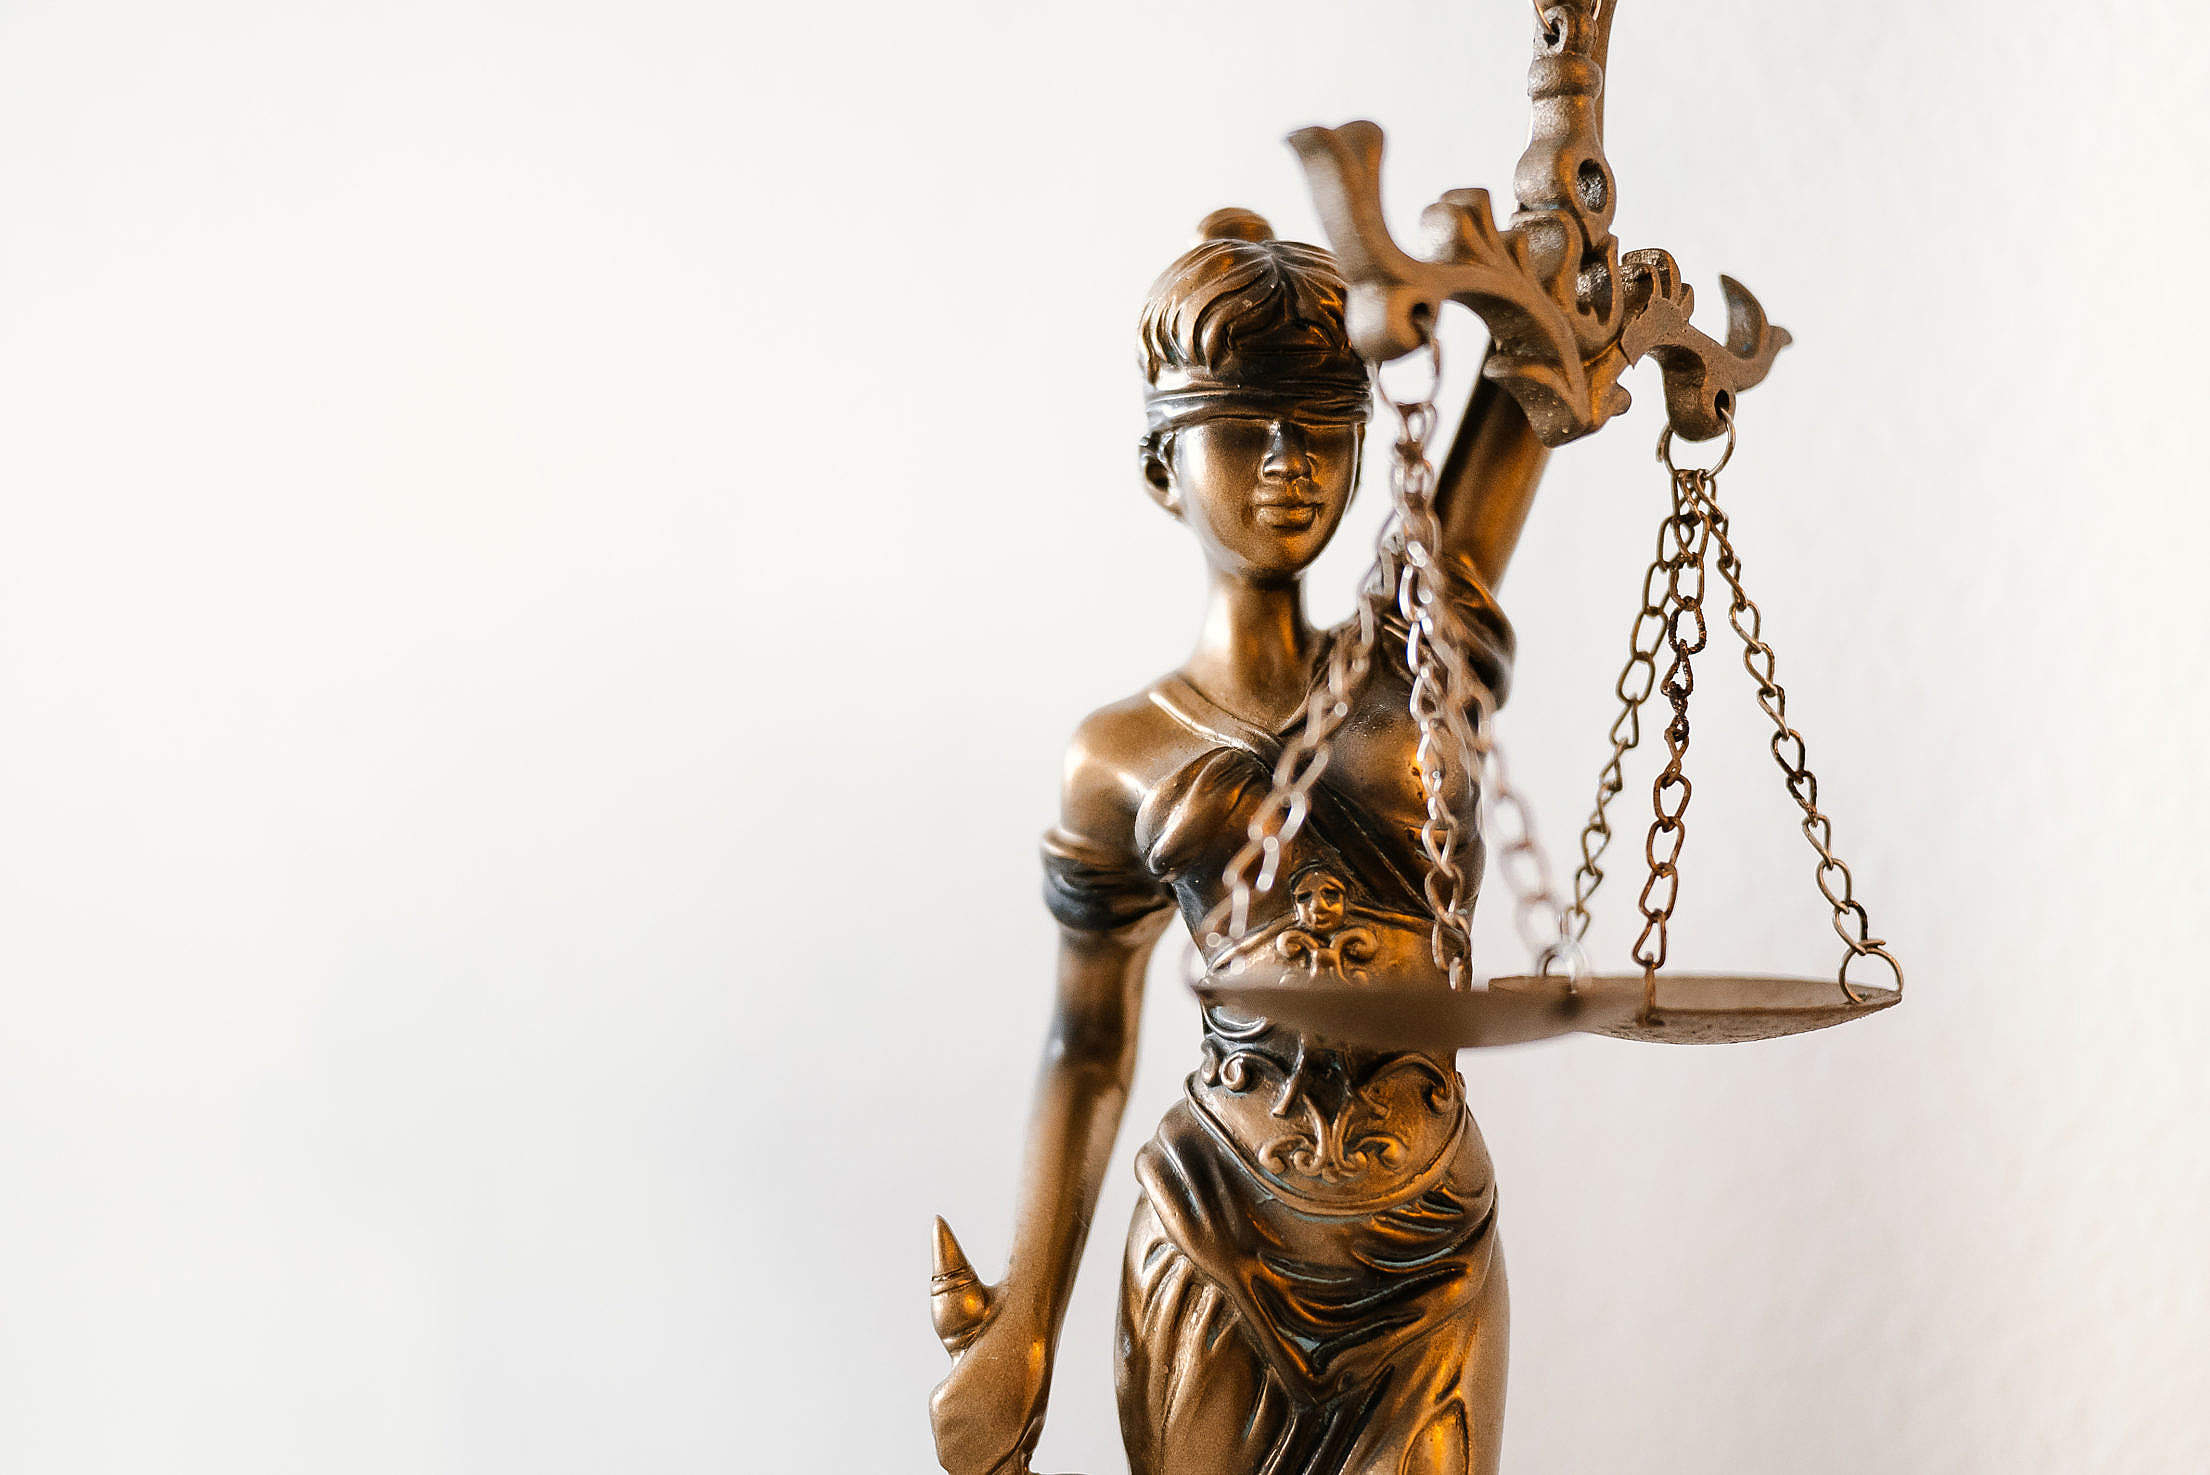 Blind Lady Justice Statue in Law Office Free Stock Photo